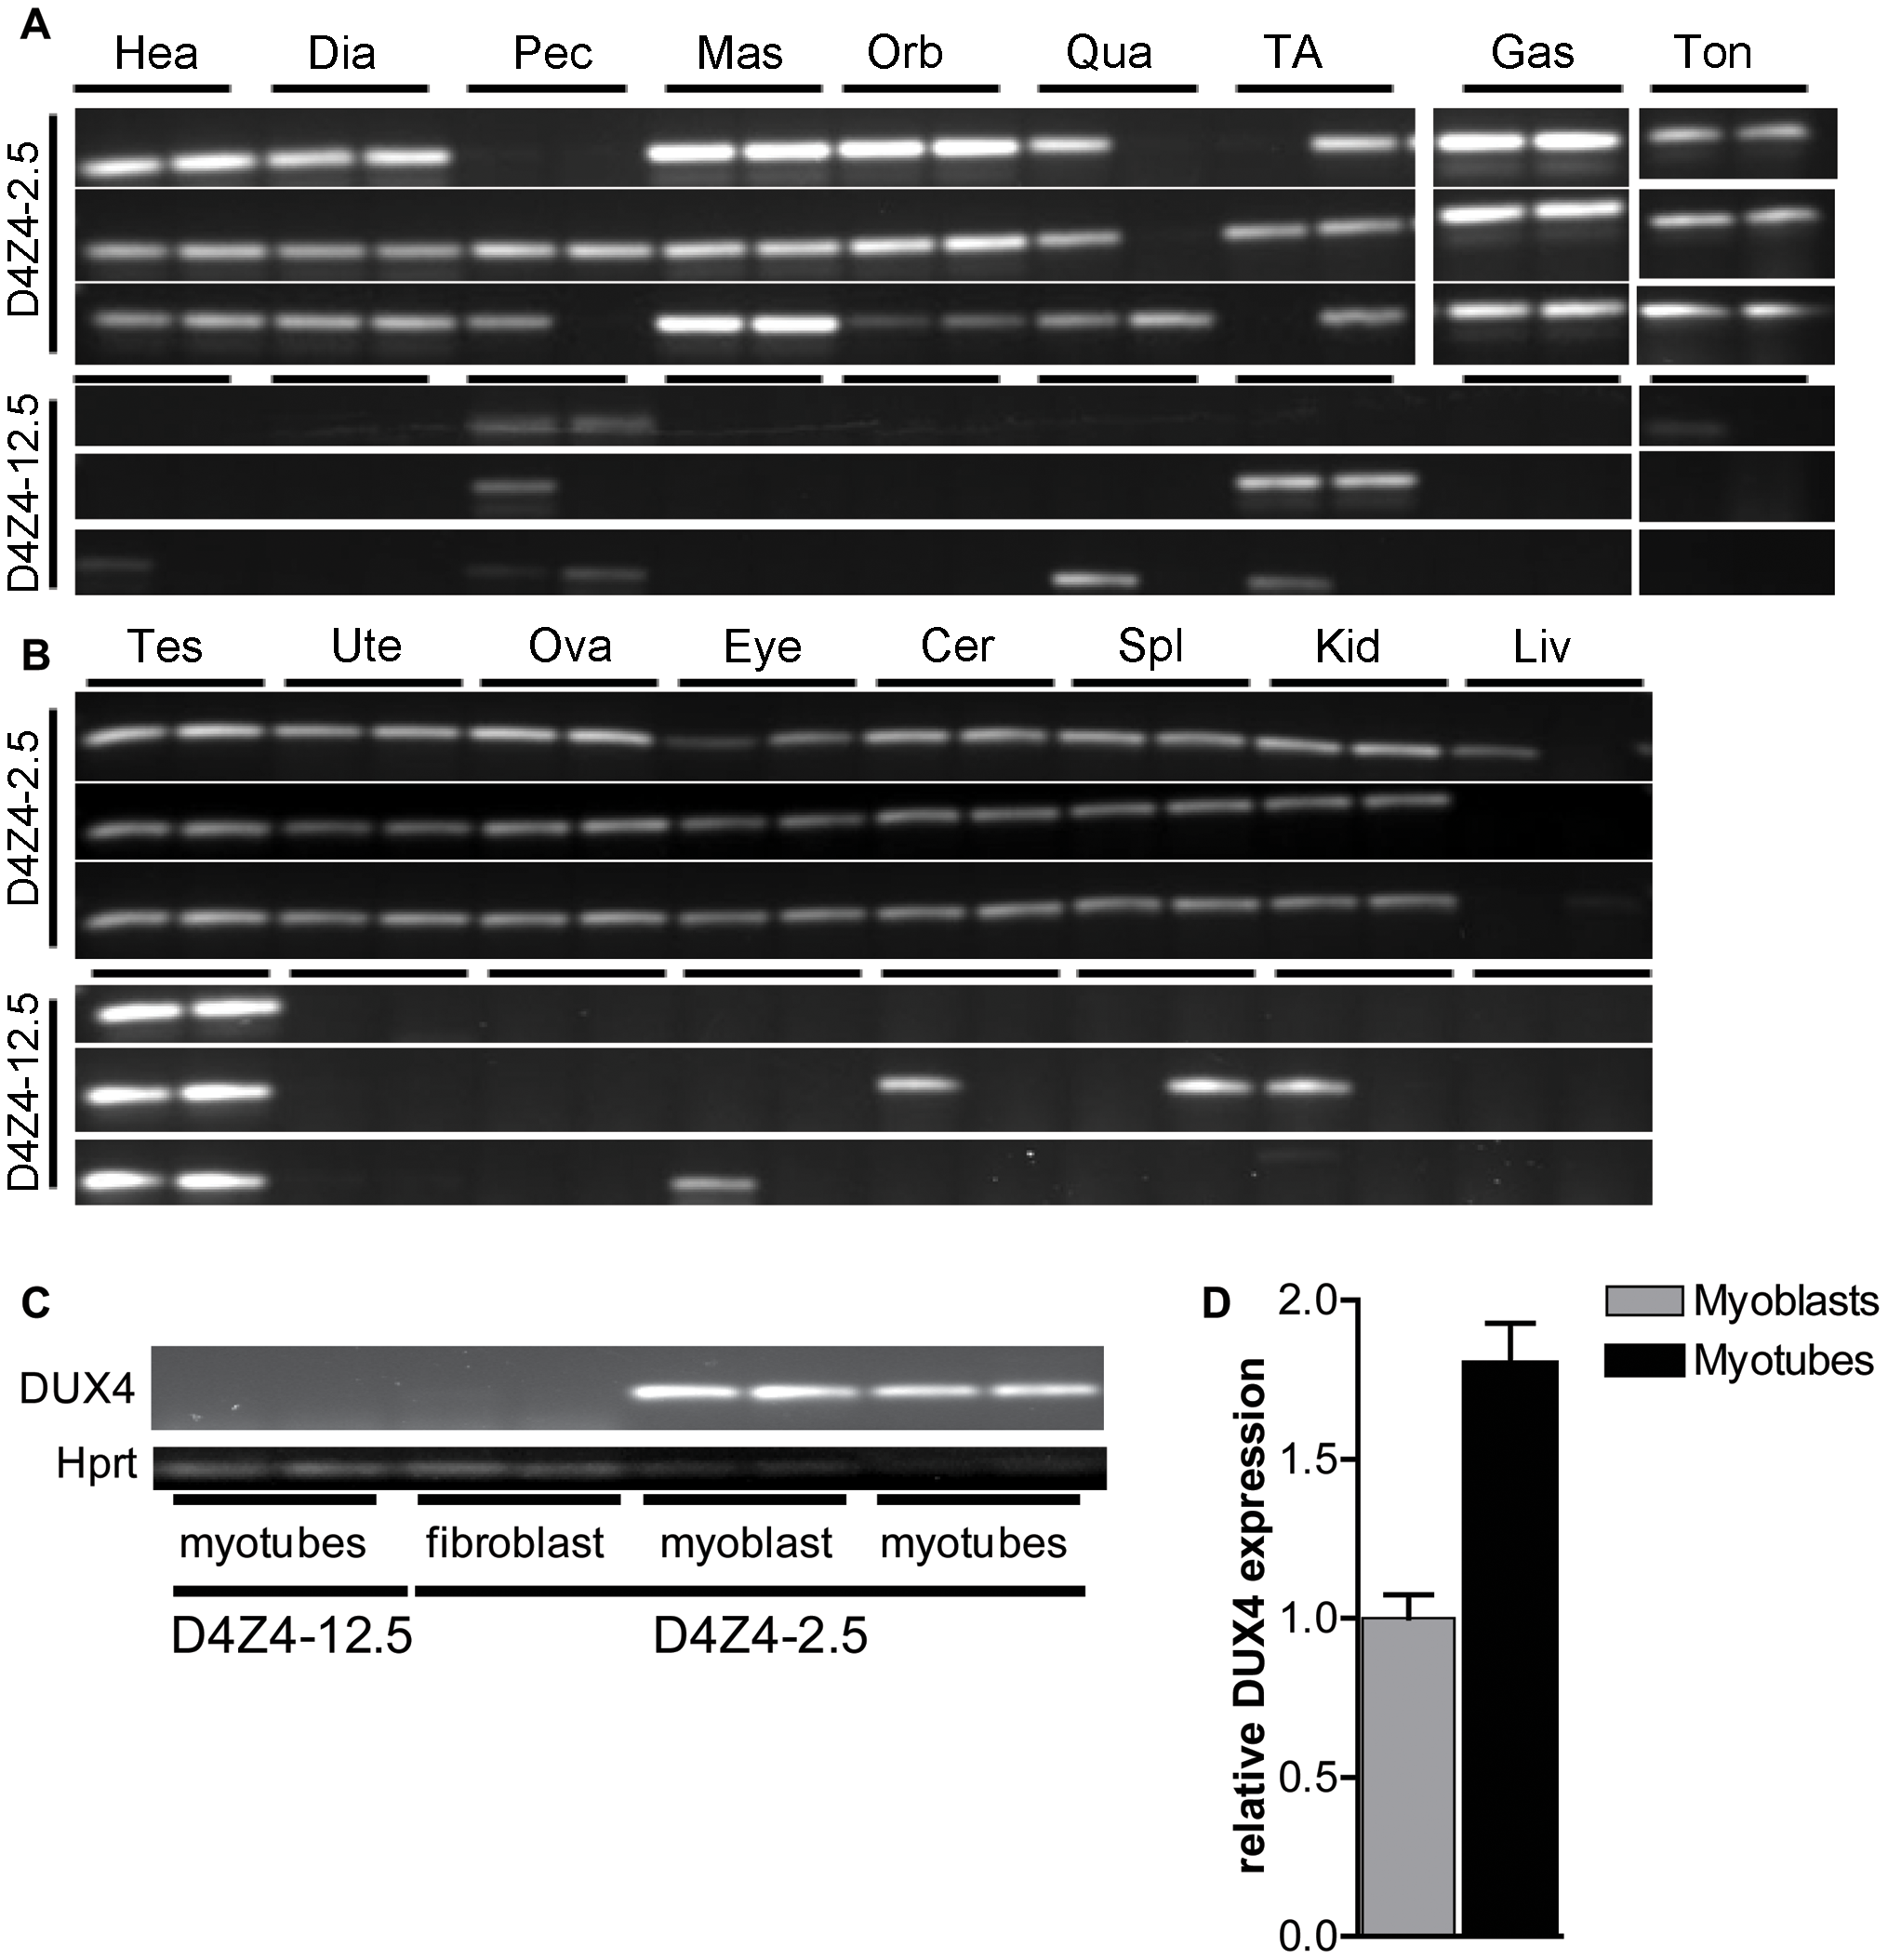 Analysis of transcriptional activity of DUX4 in a panel of tissues of D4Z4-2.5 and D4Z4-12.5 mice.